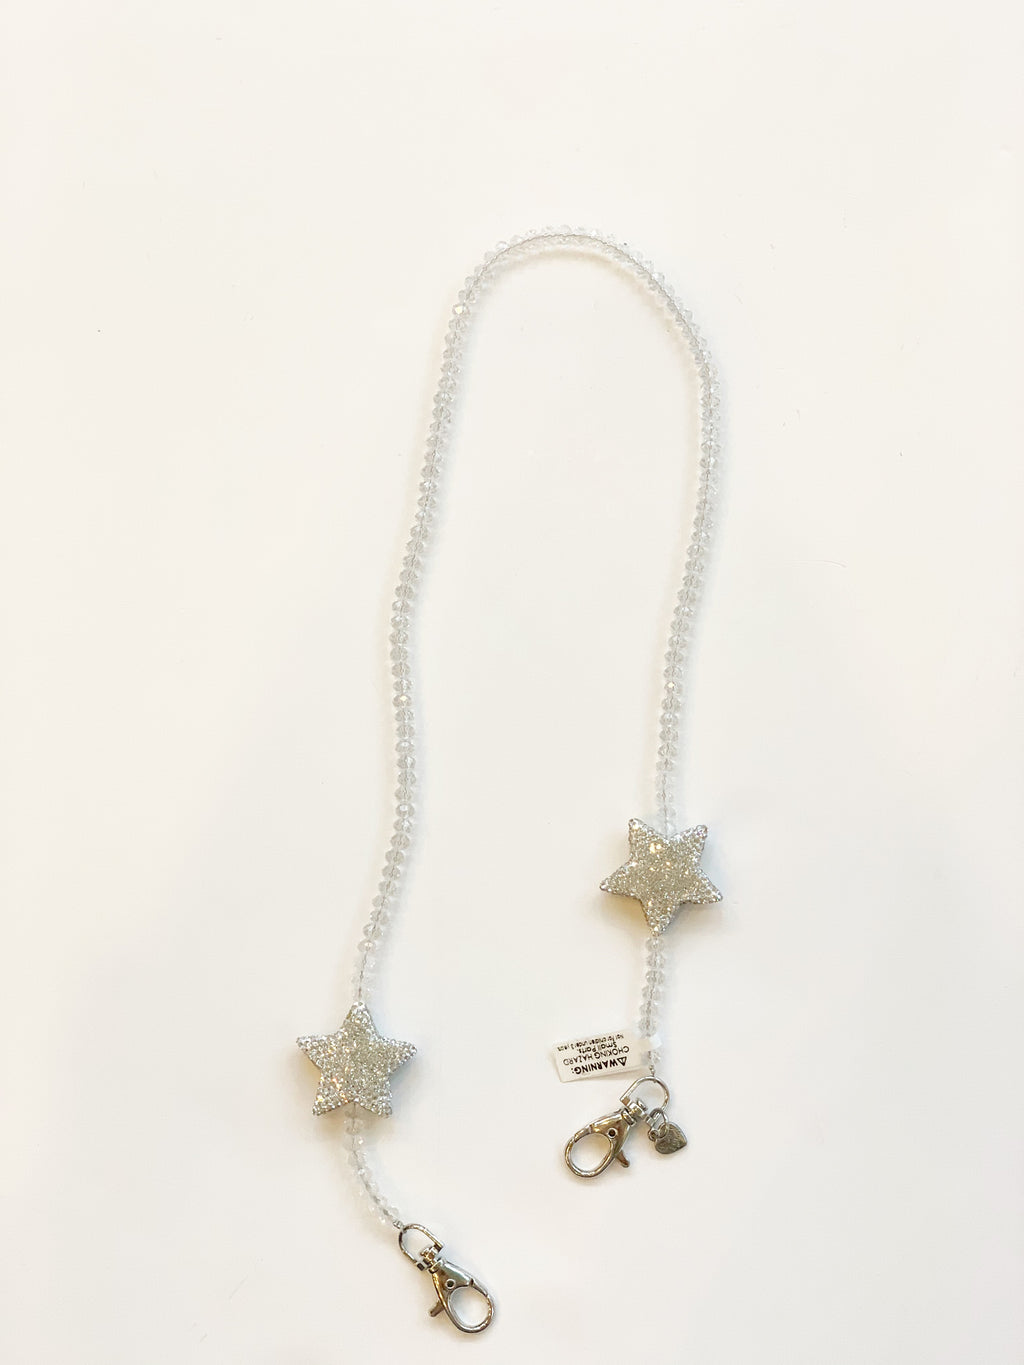 Mask Chain - White with Silver Star